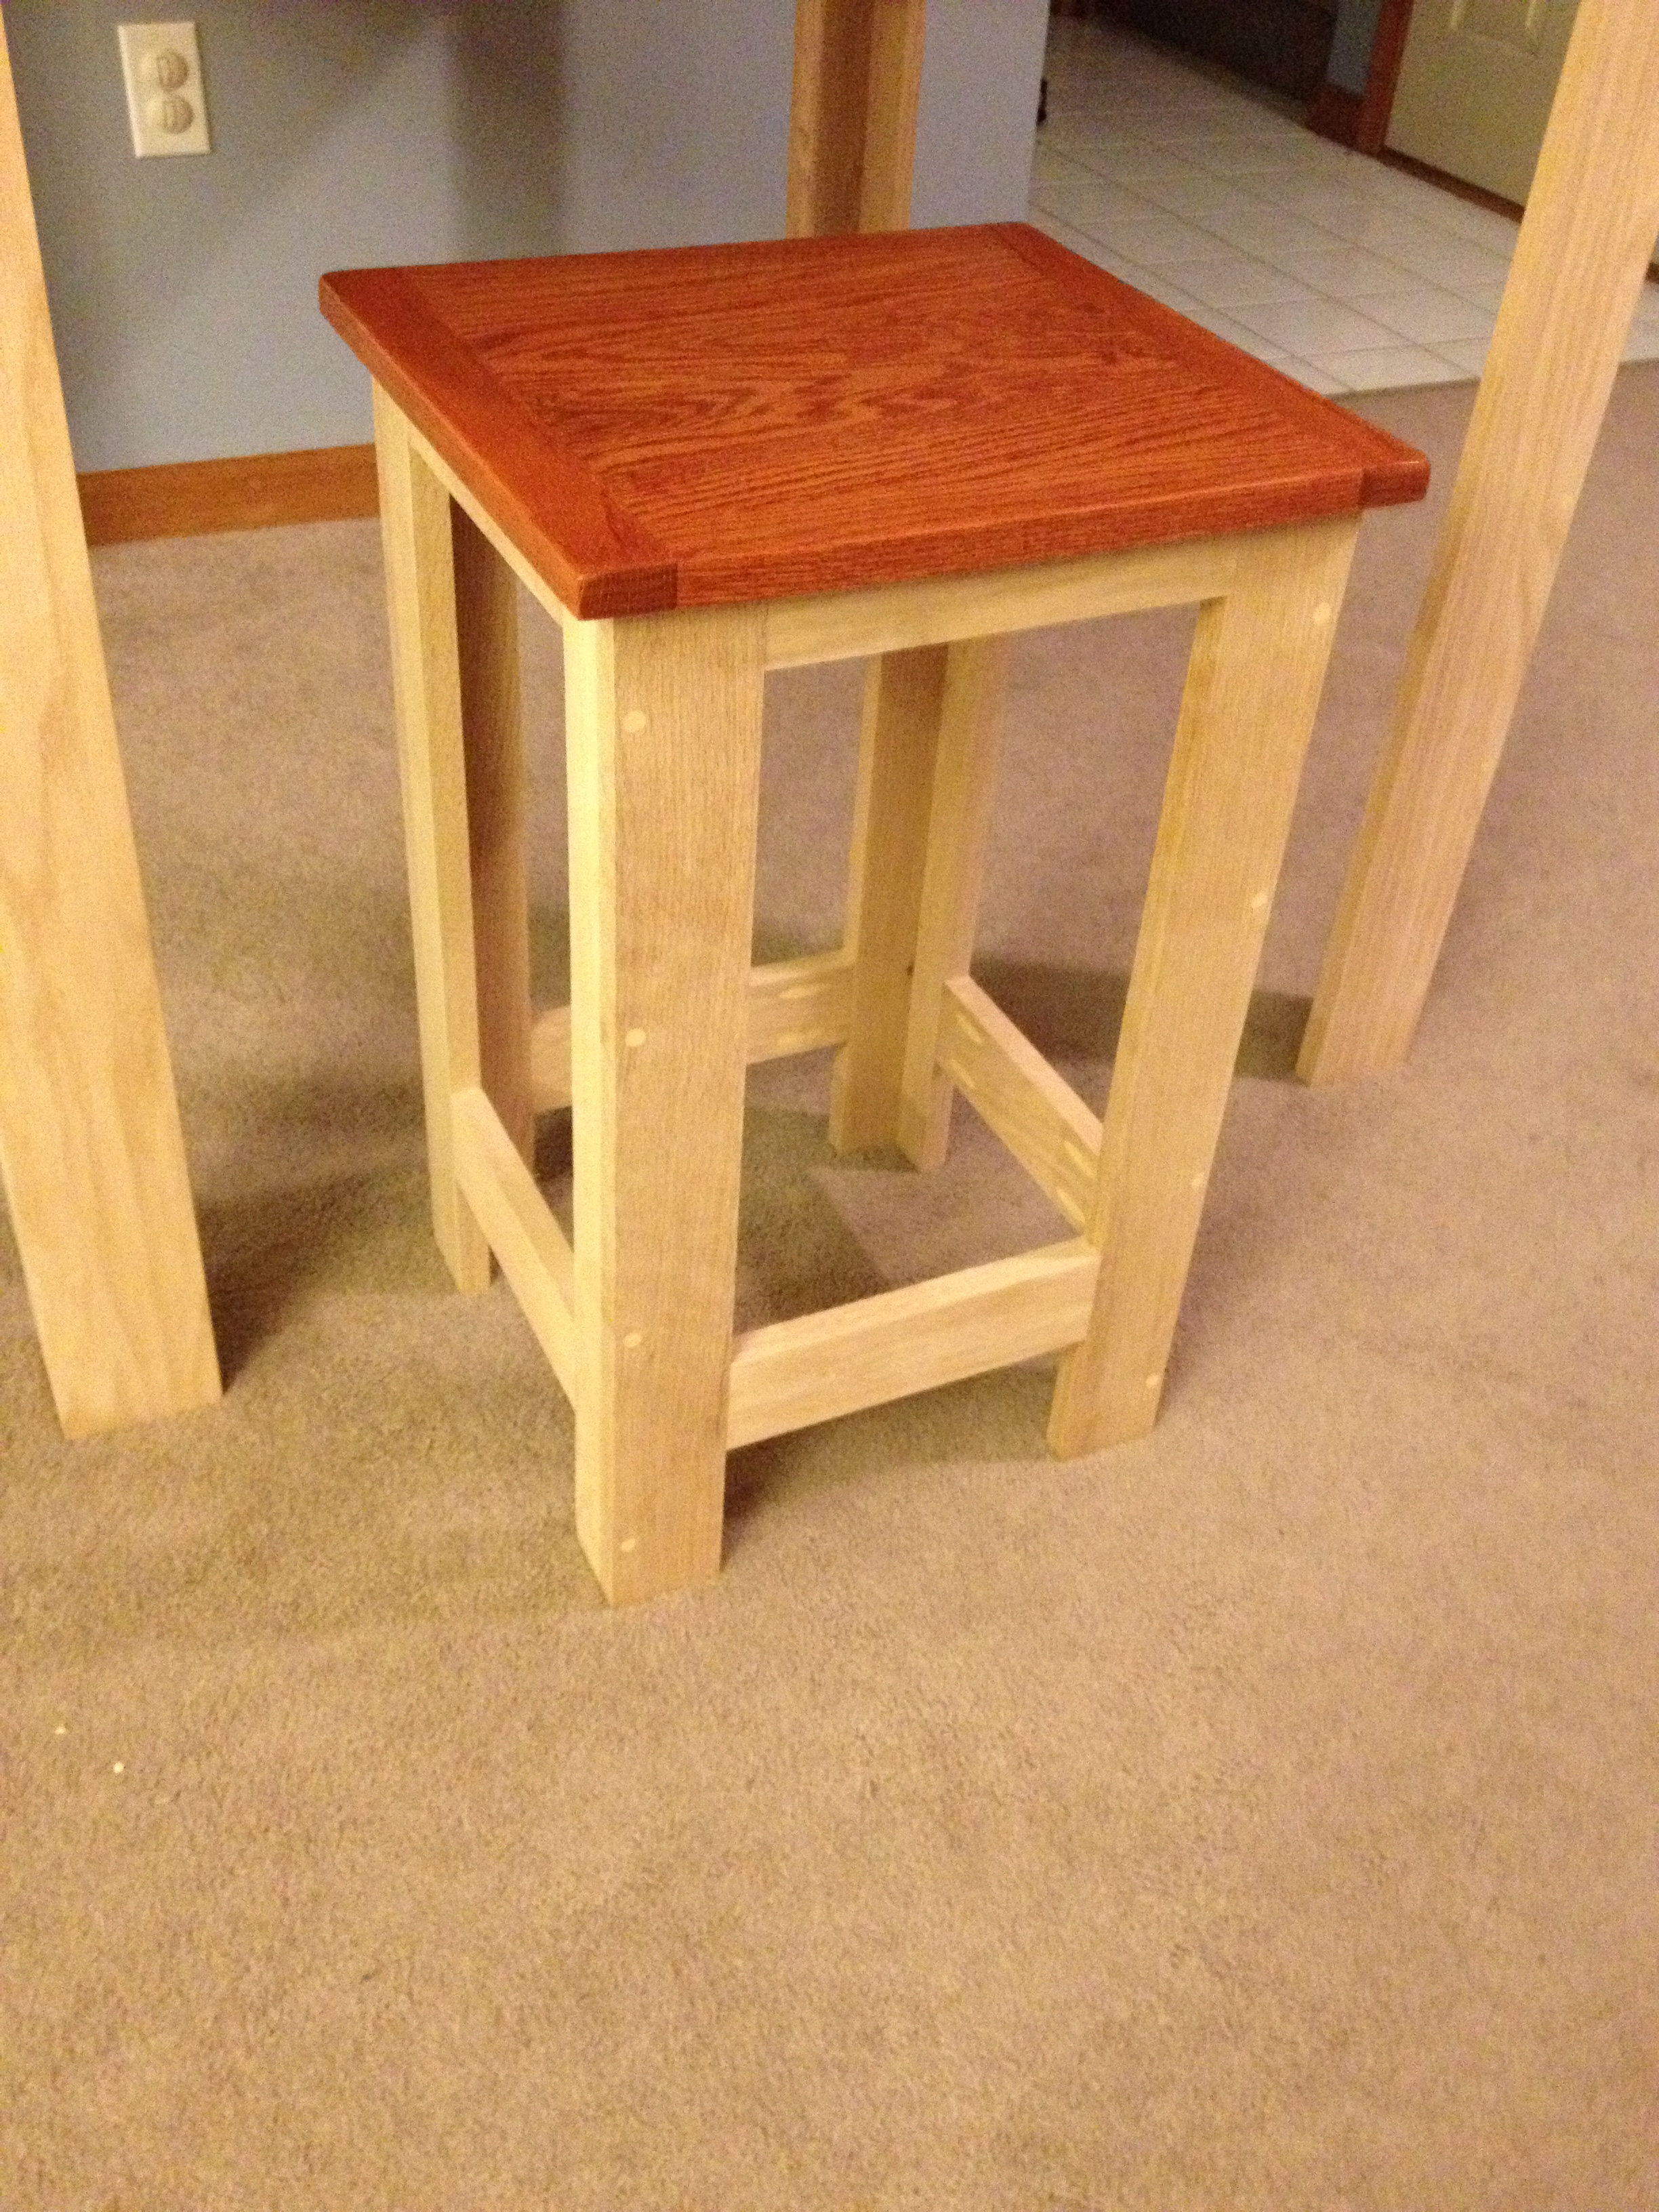 Ana white pub table stools diy projects for Table design homemade